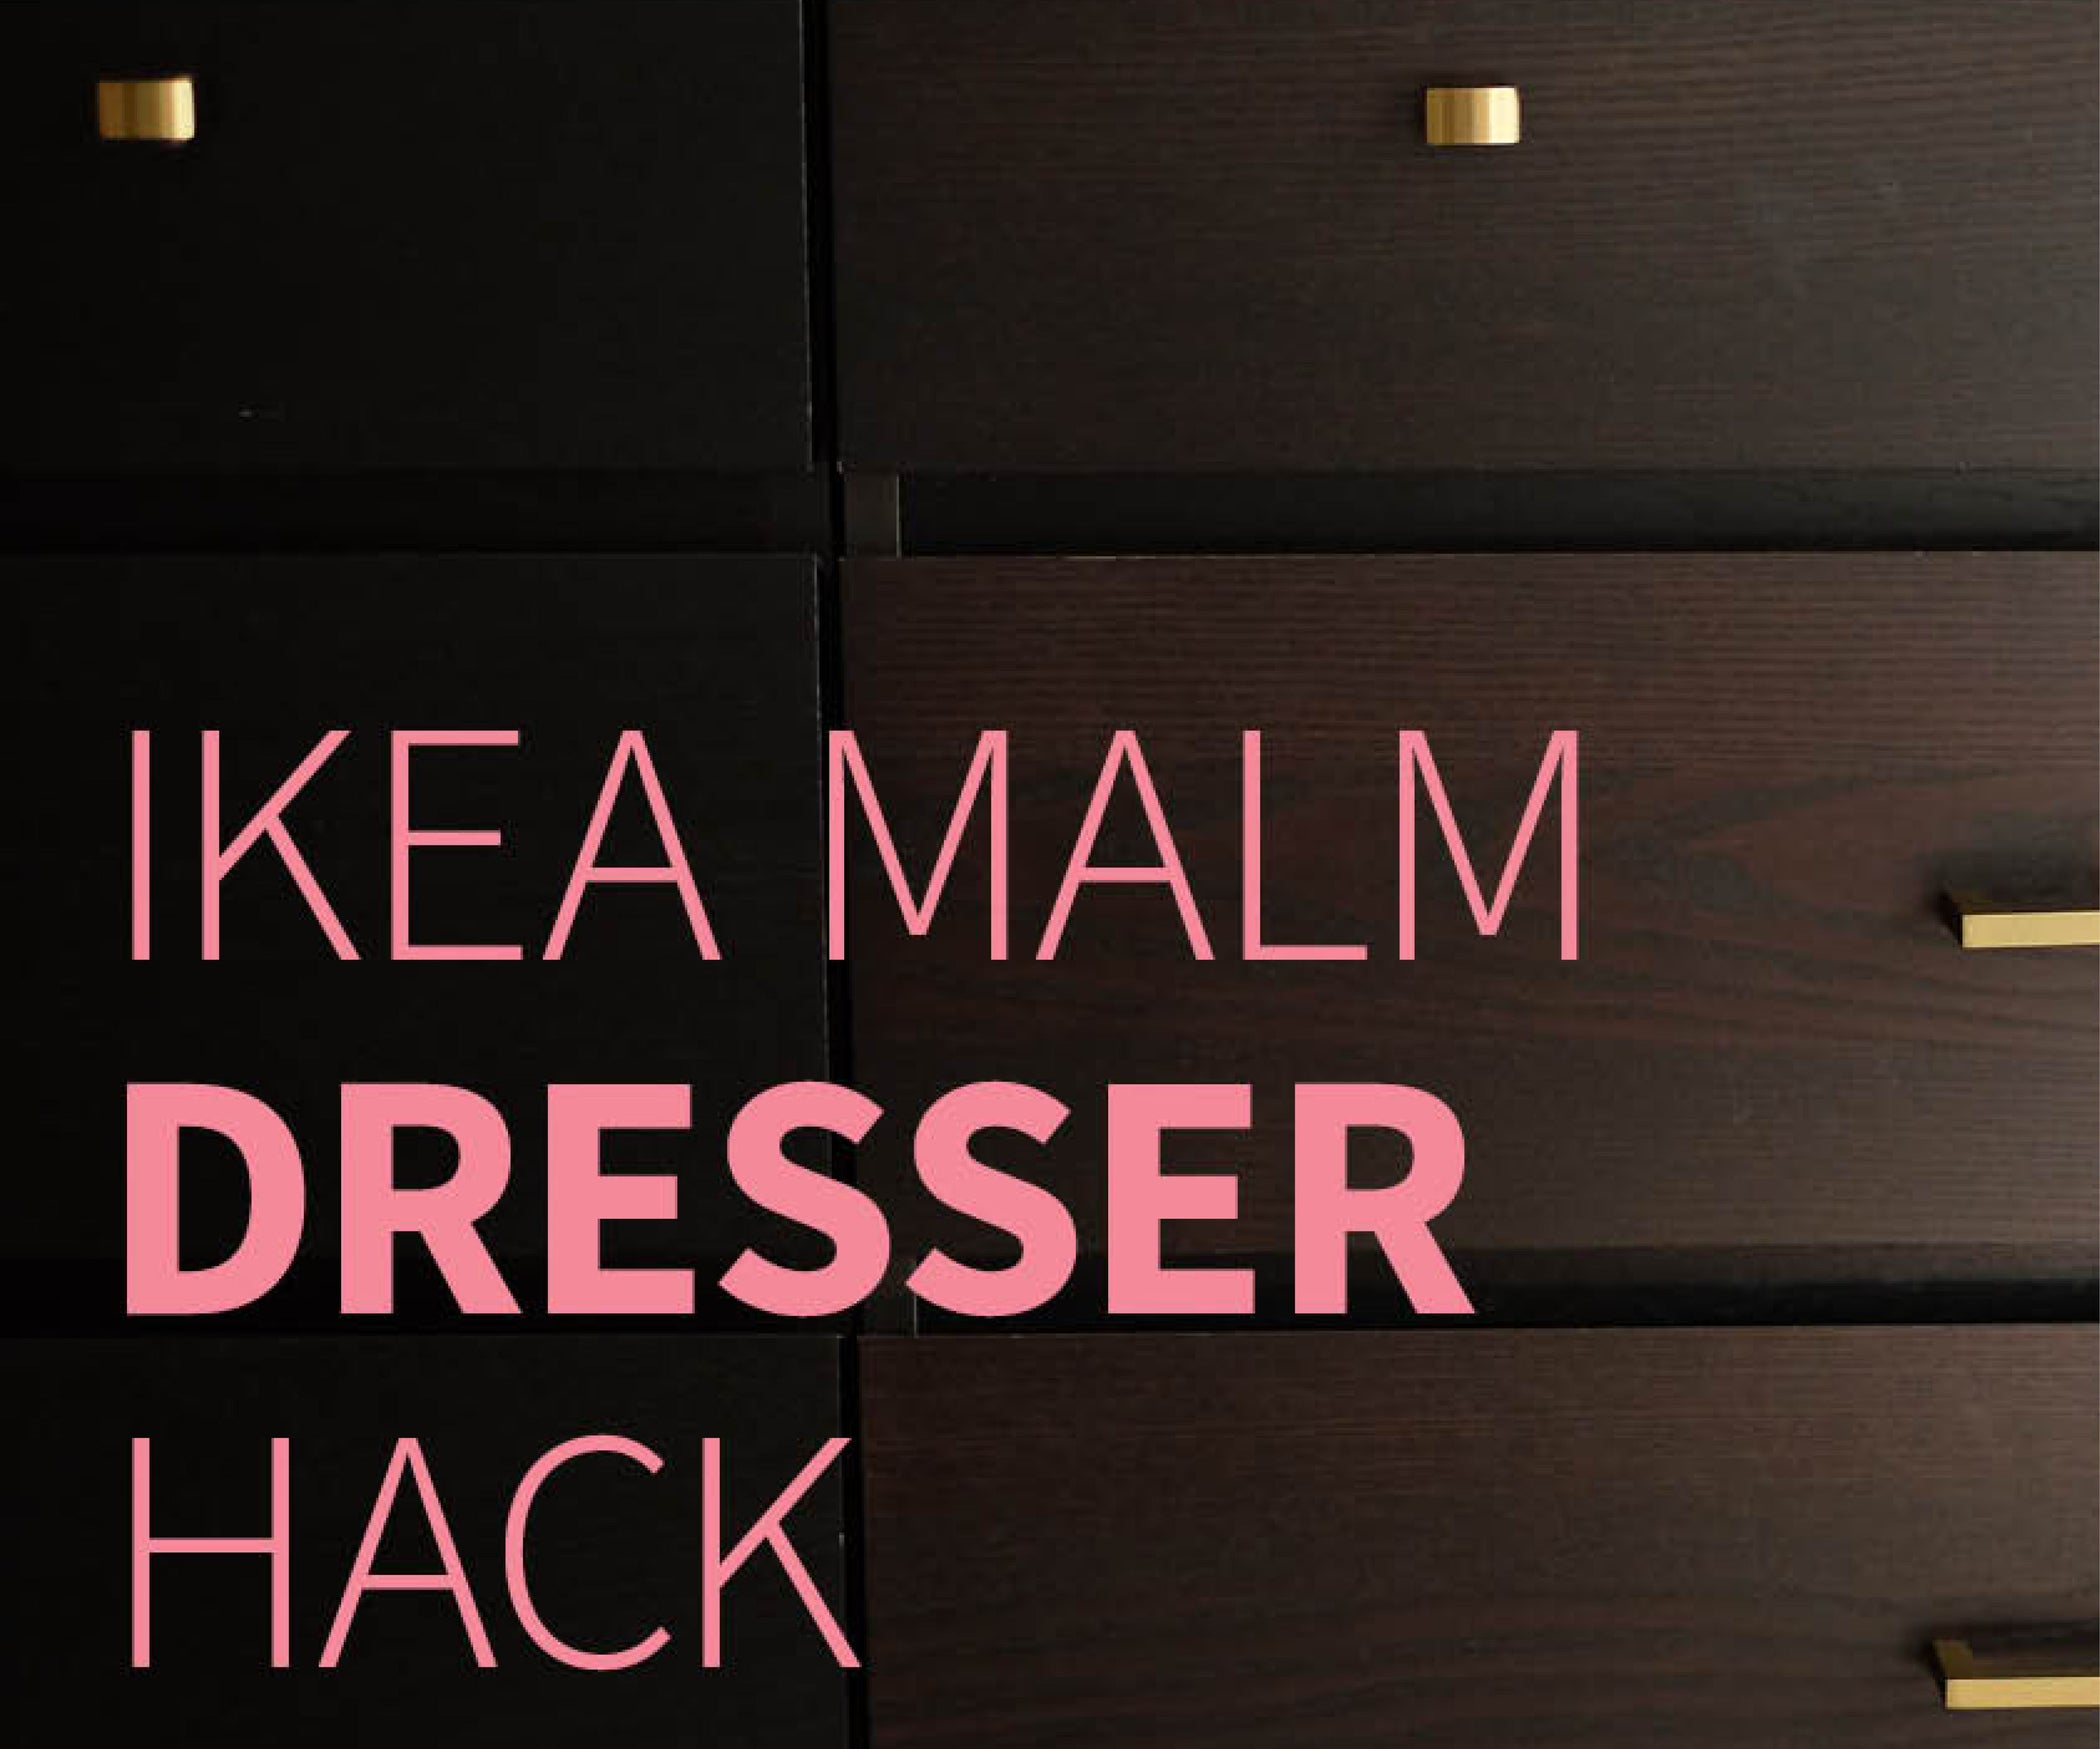 ikea malm dresser hack: 5 steps (with pictures)